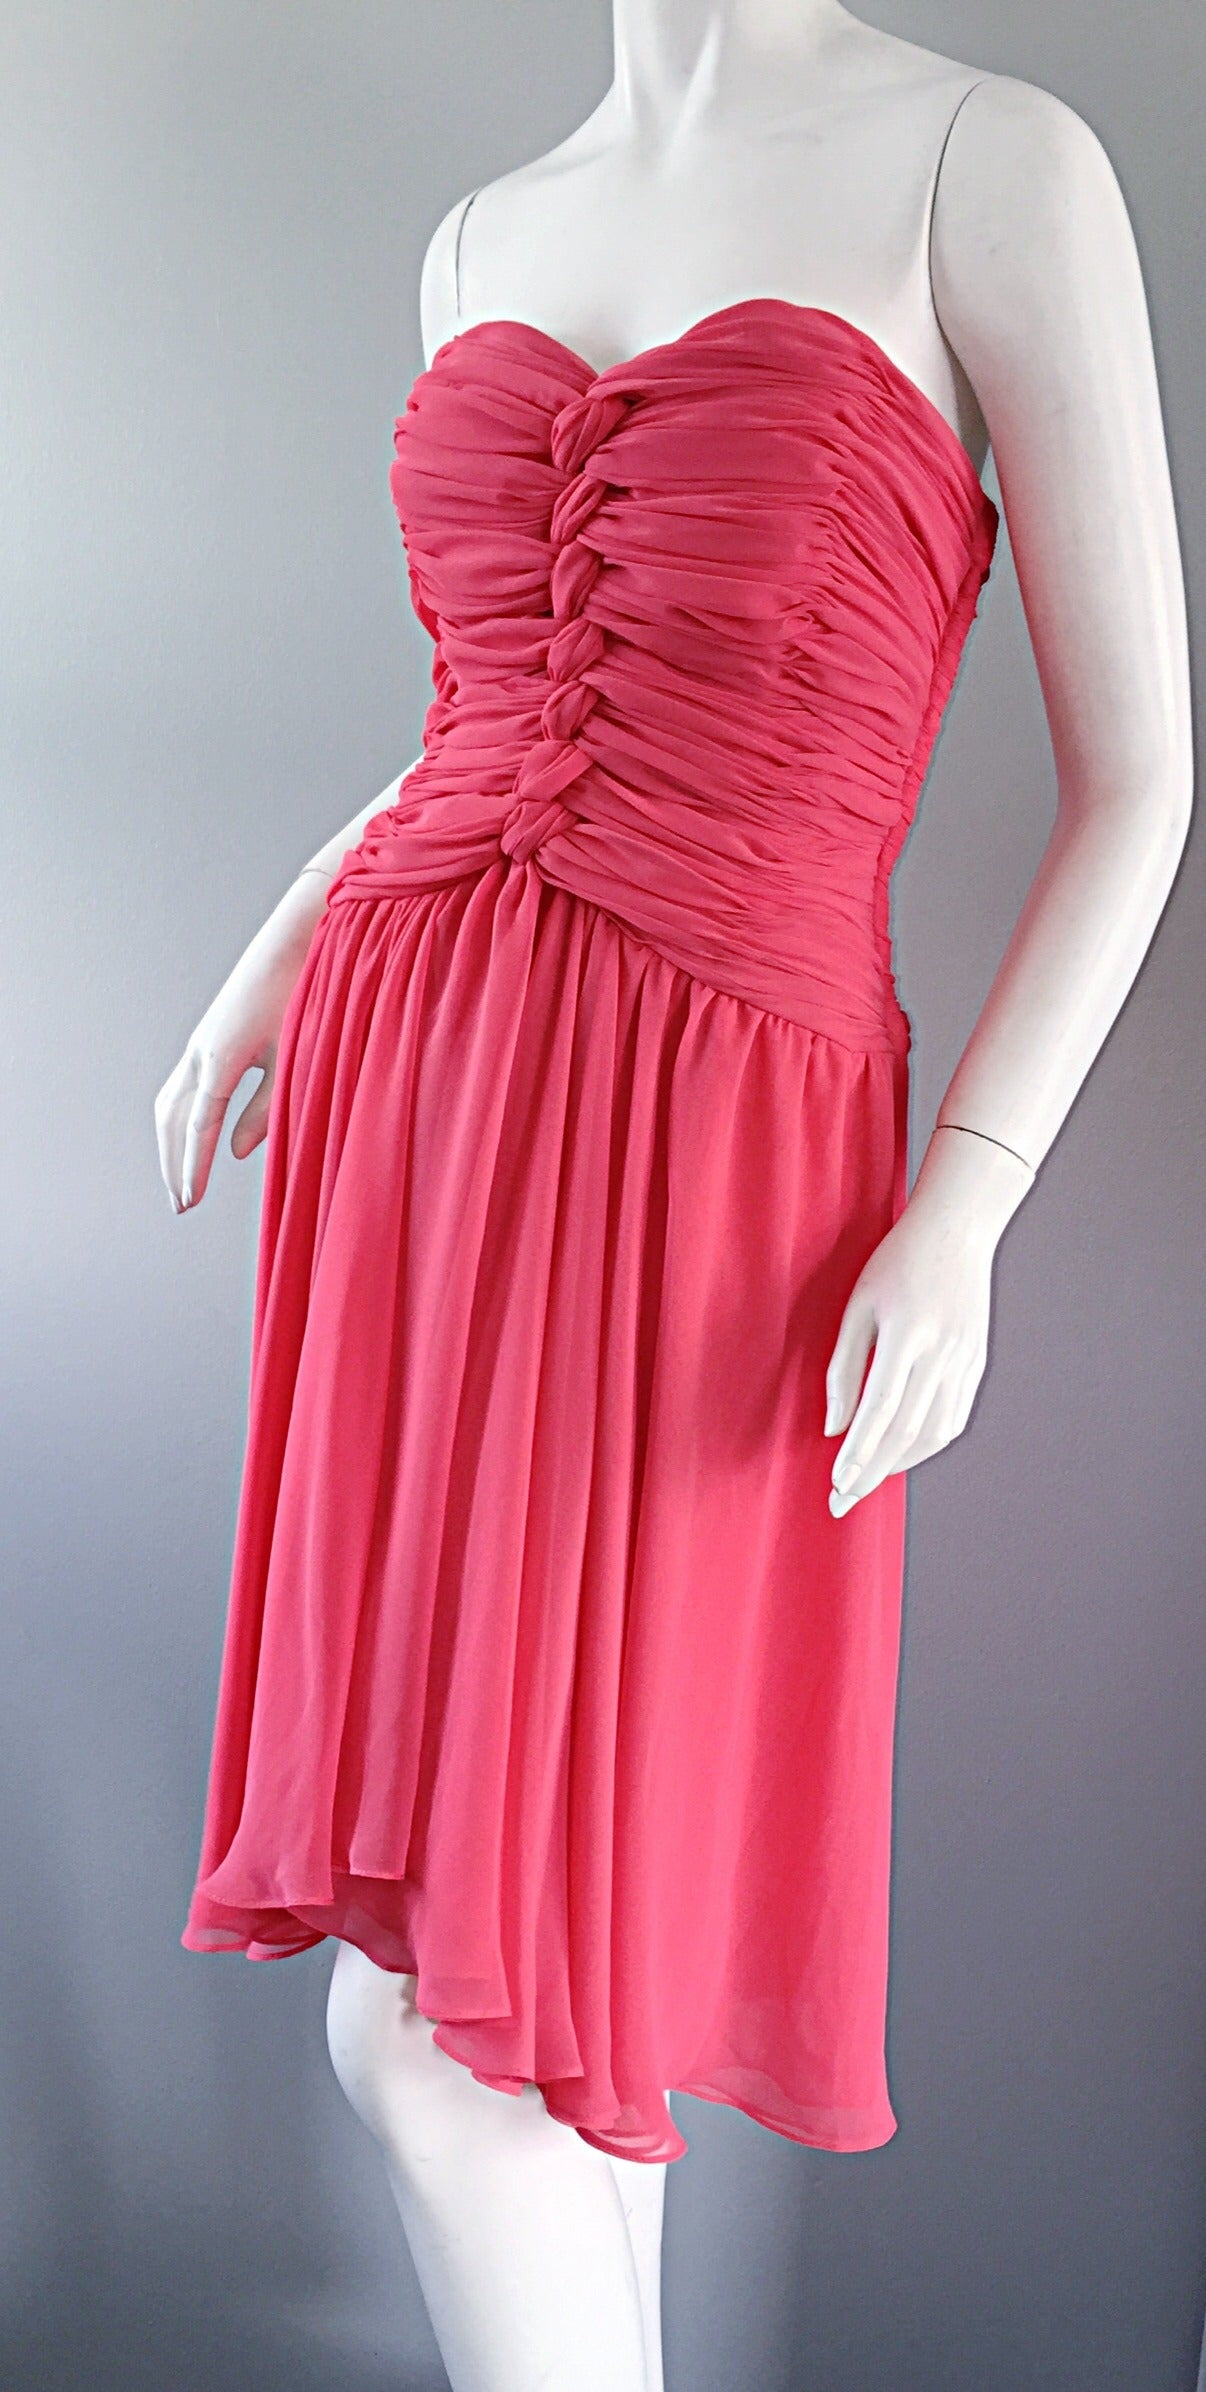 Victor Costa Coral Pink Strapless Flowy Knotted Vintage Cocktail Dress Size 8 10 For Sale 3